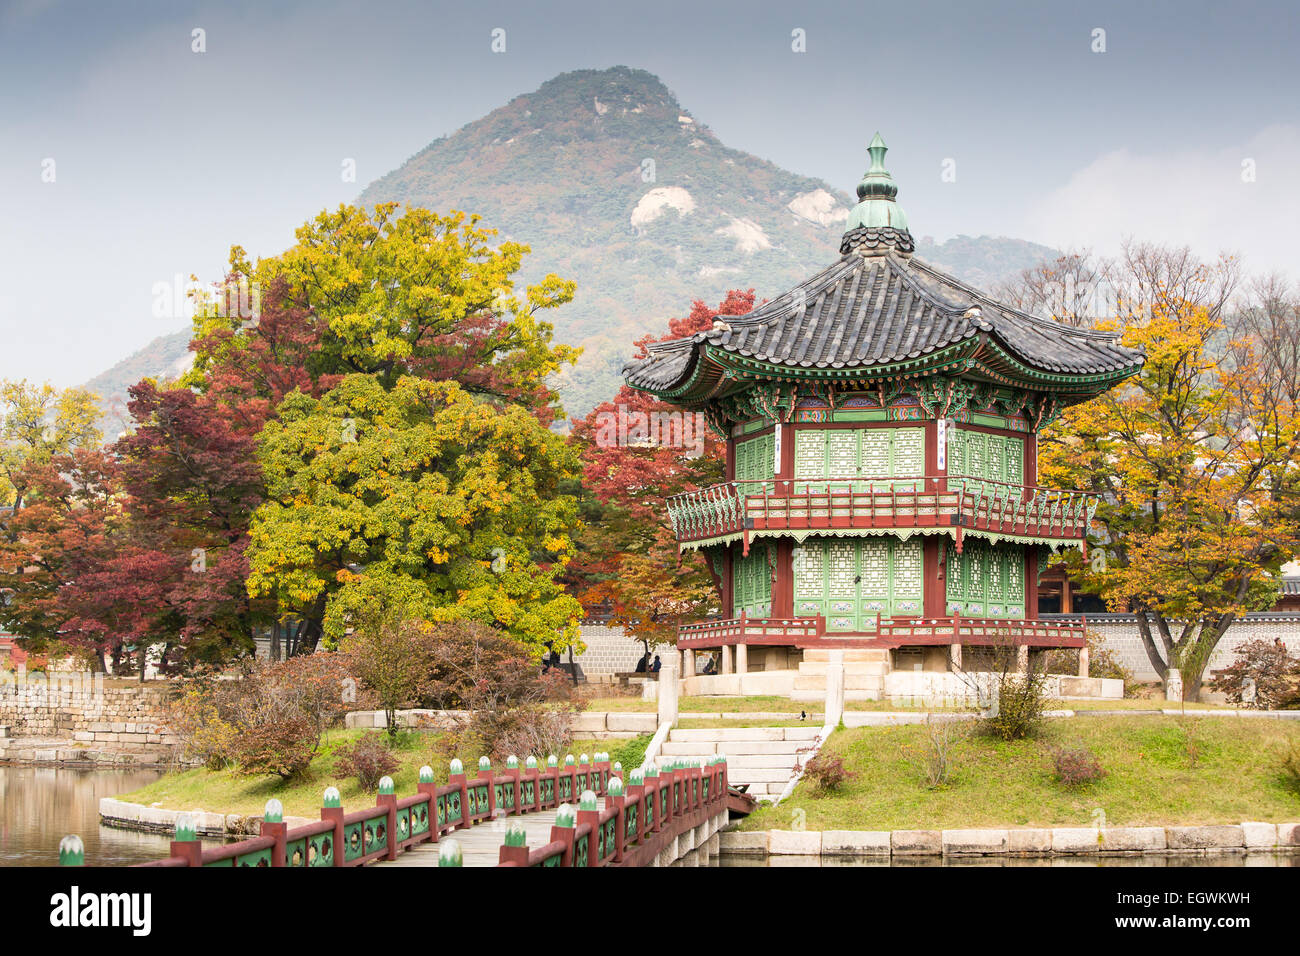 Gyeongbokgung Palace and its grounds on a fine autumn day in Seoul, South Korea. Stock Photo